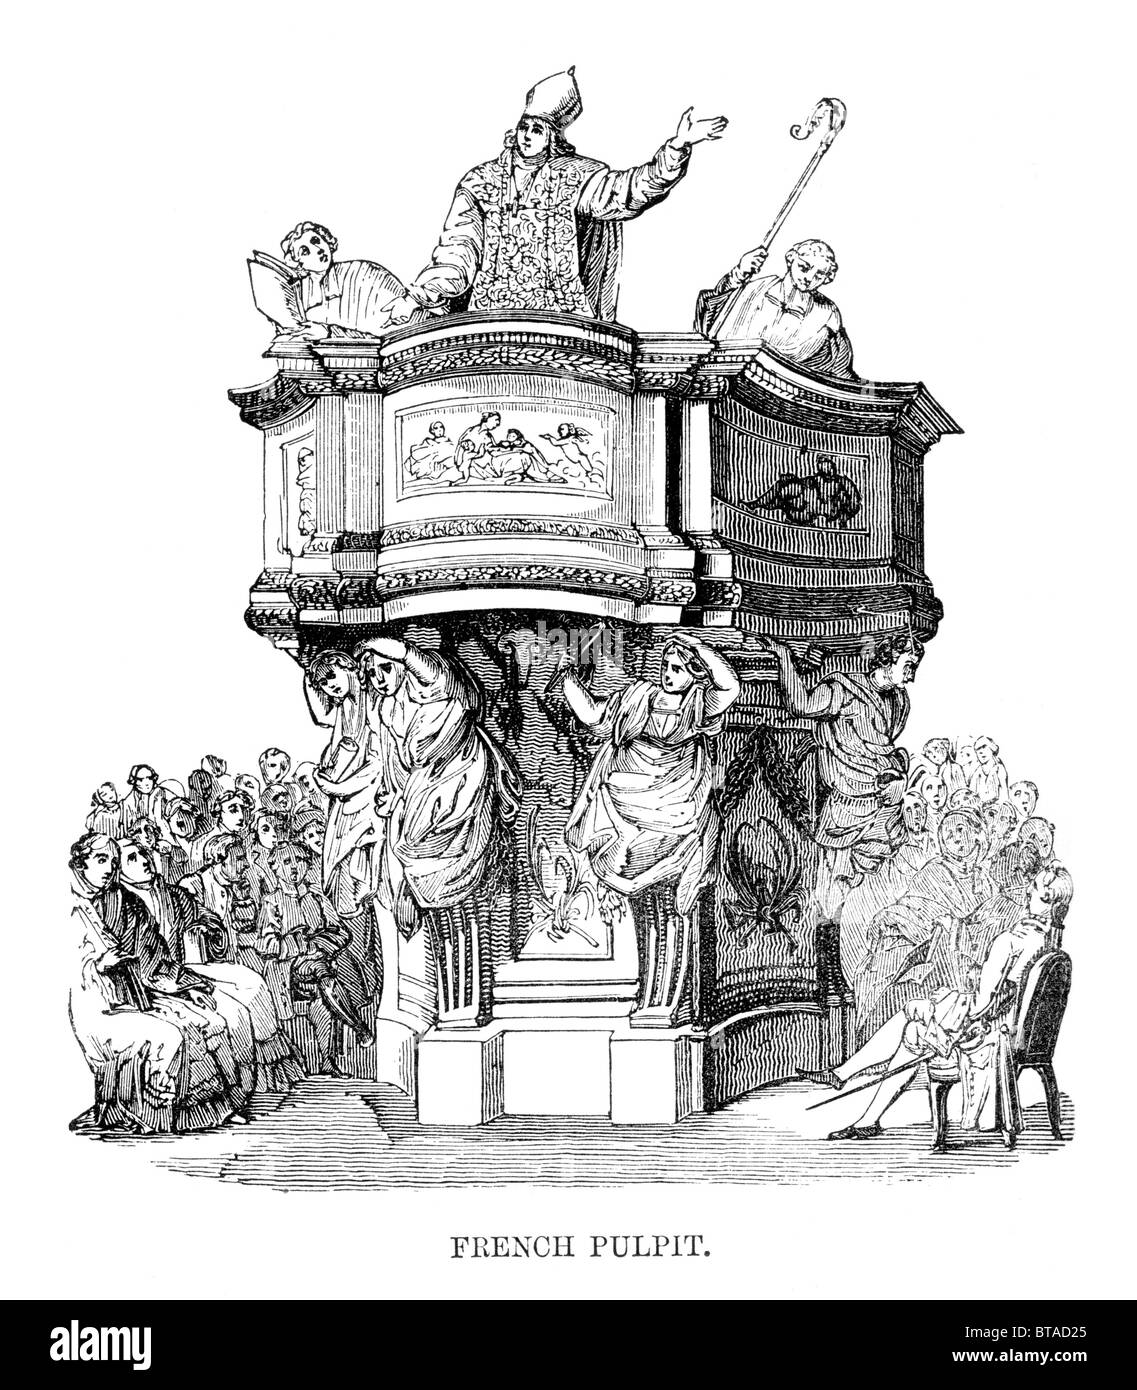 French Pulpit; Black and White Illustration from William Hone's Everyday Book Stock Photo